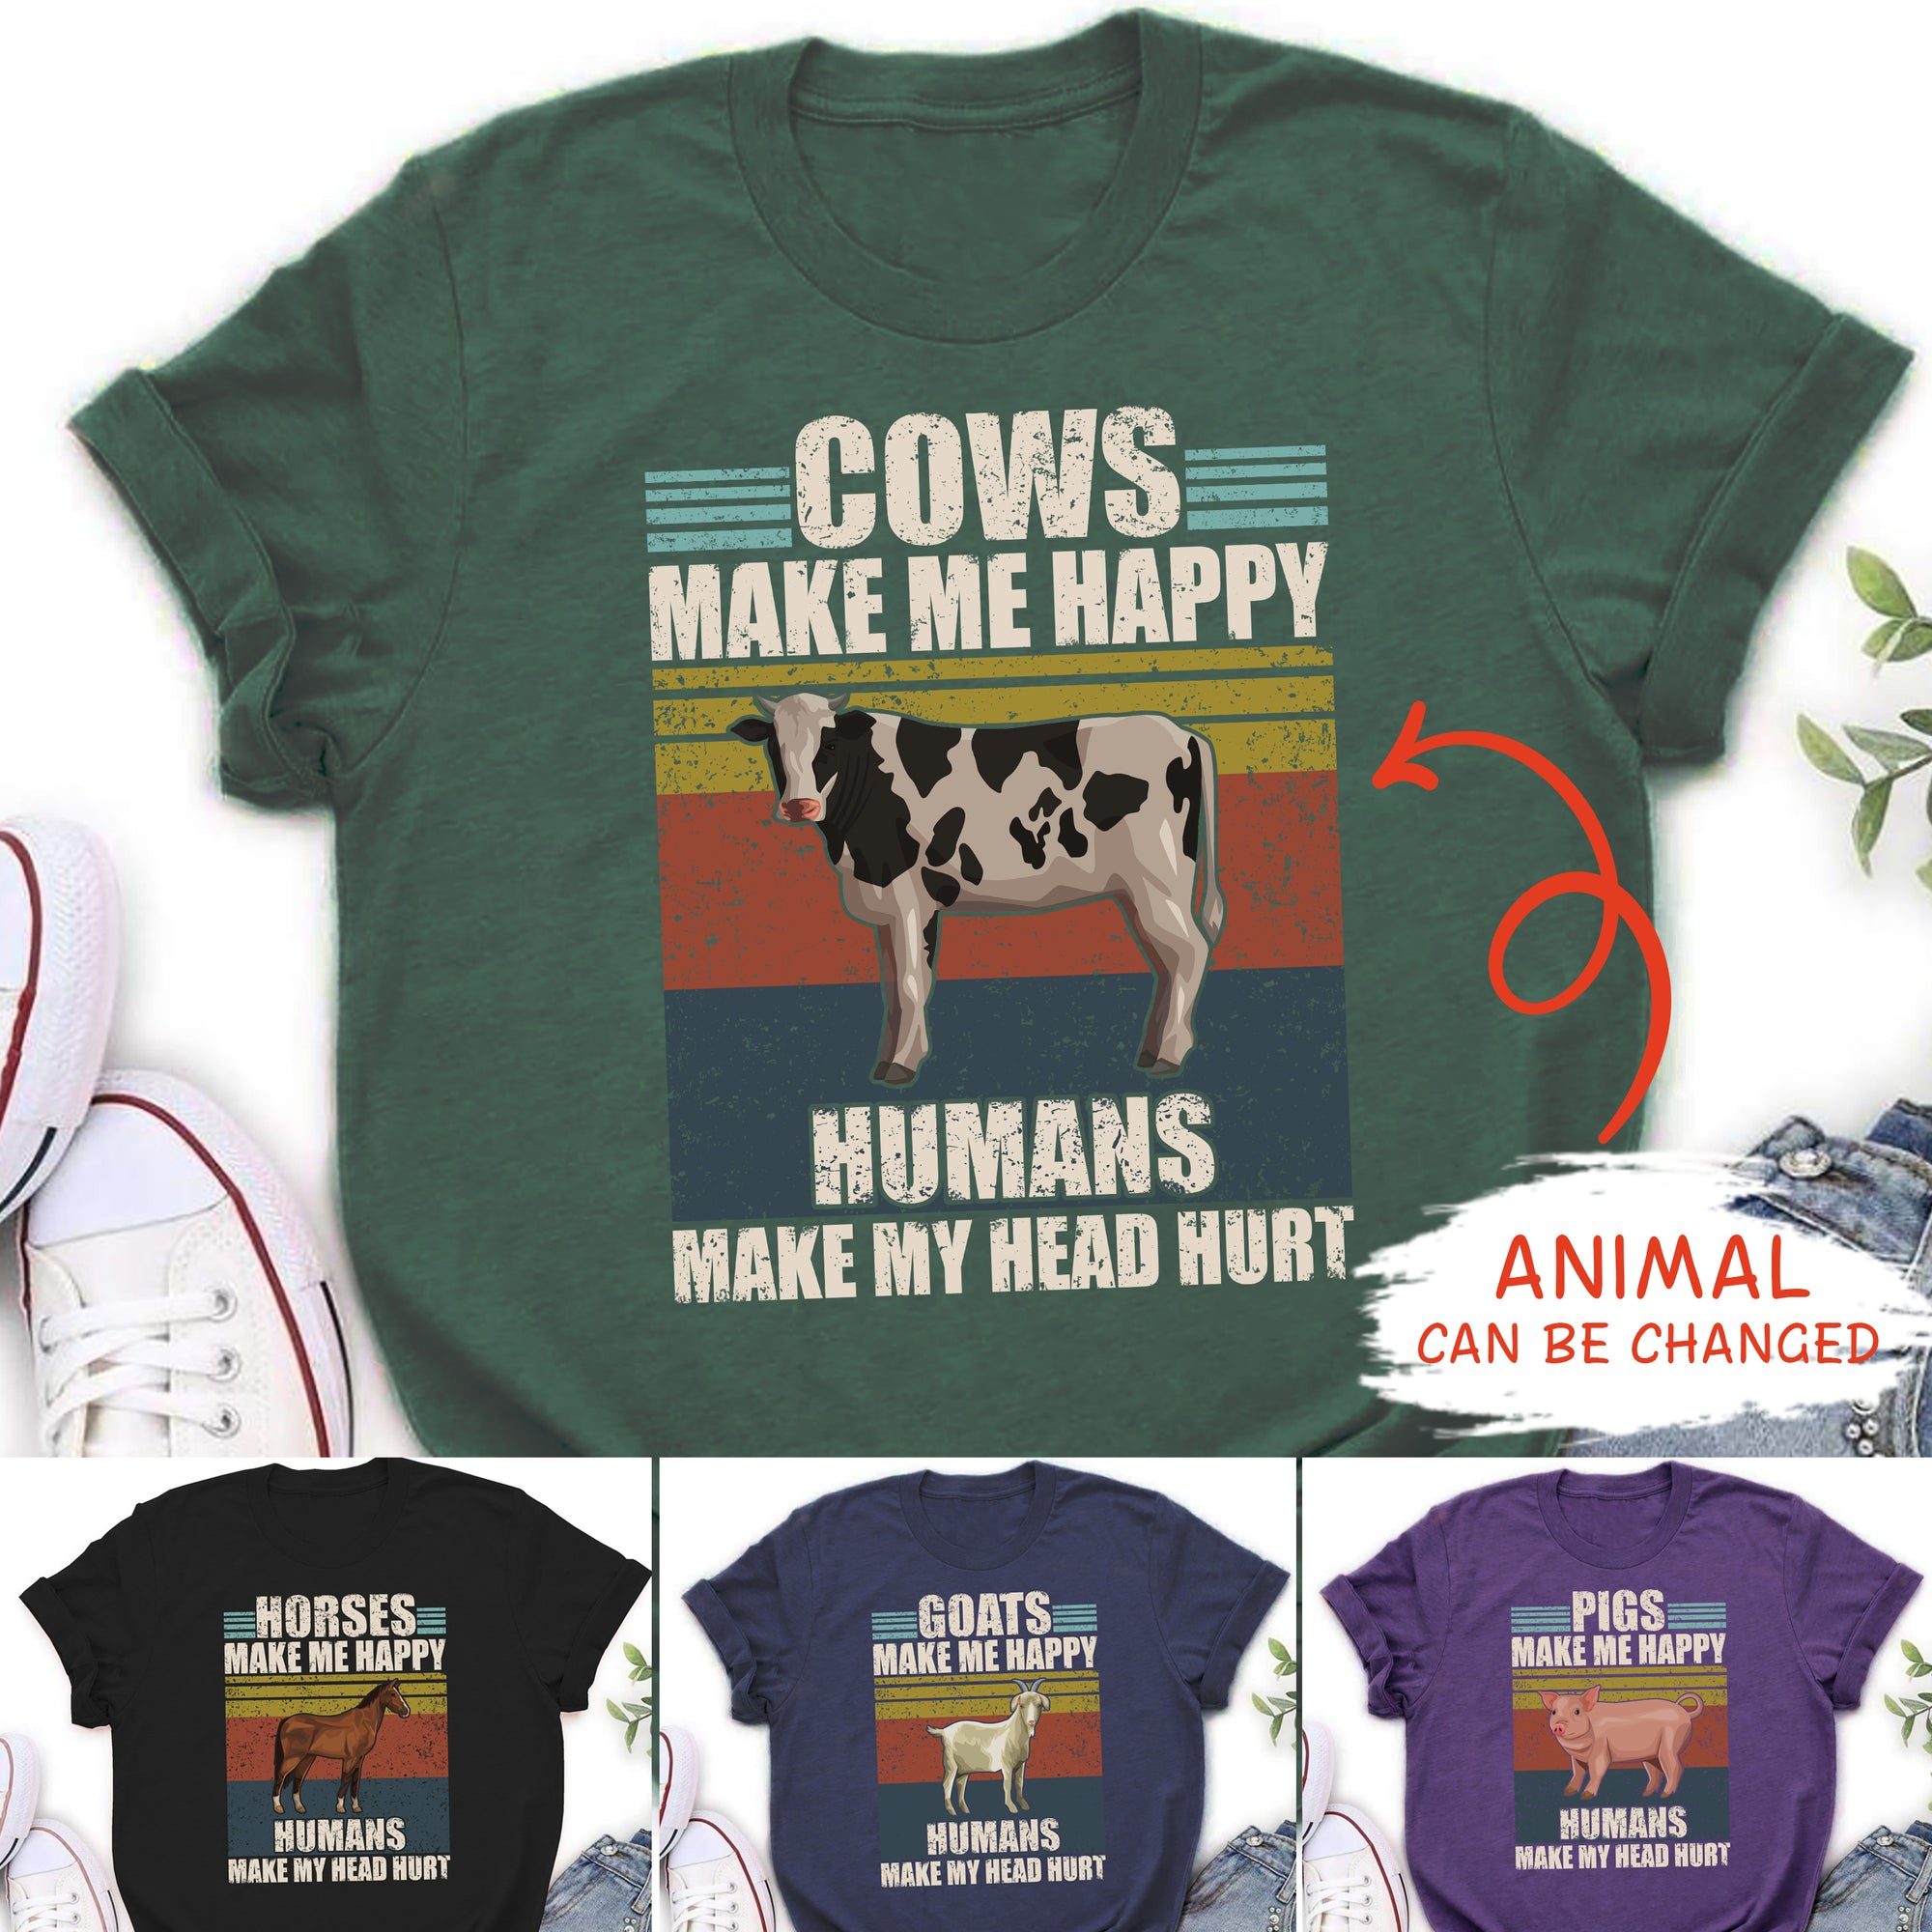 Personalized Custom Unisex T-shirt - Make Me Happy - Farm Shirt, Animals Make Me Happy Shirt, Customized T-Shirt, Funny T-Shirt - 9719